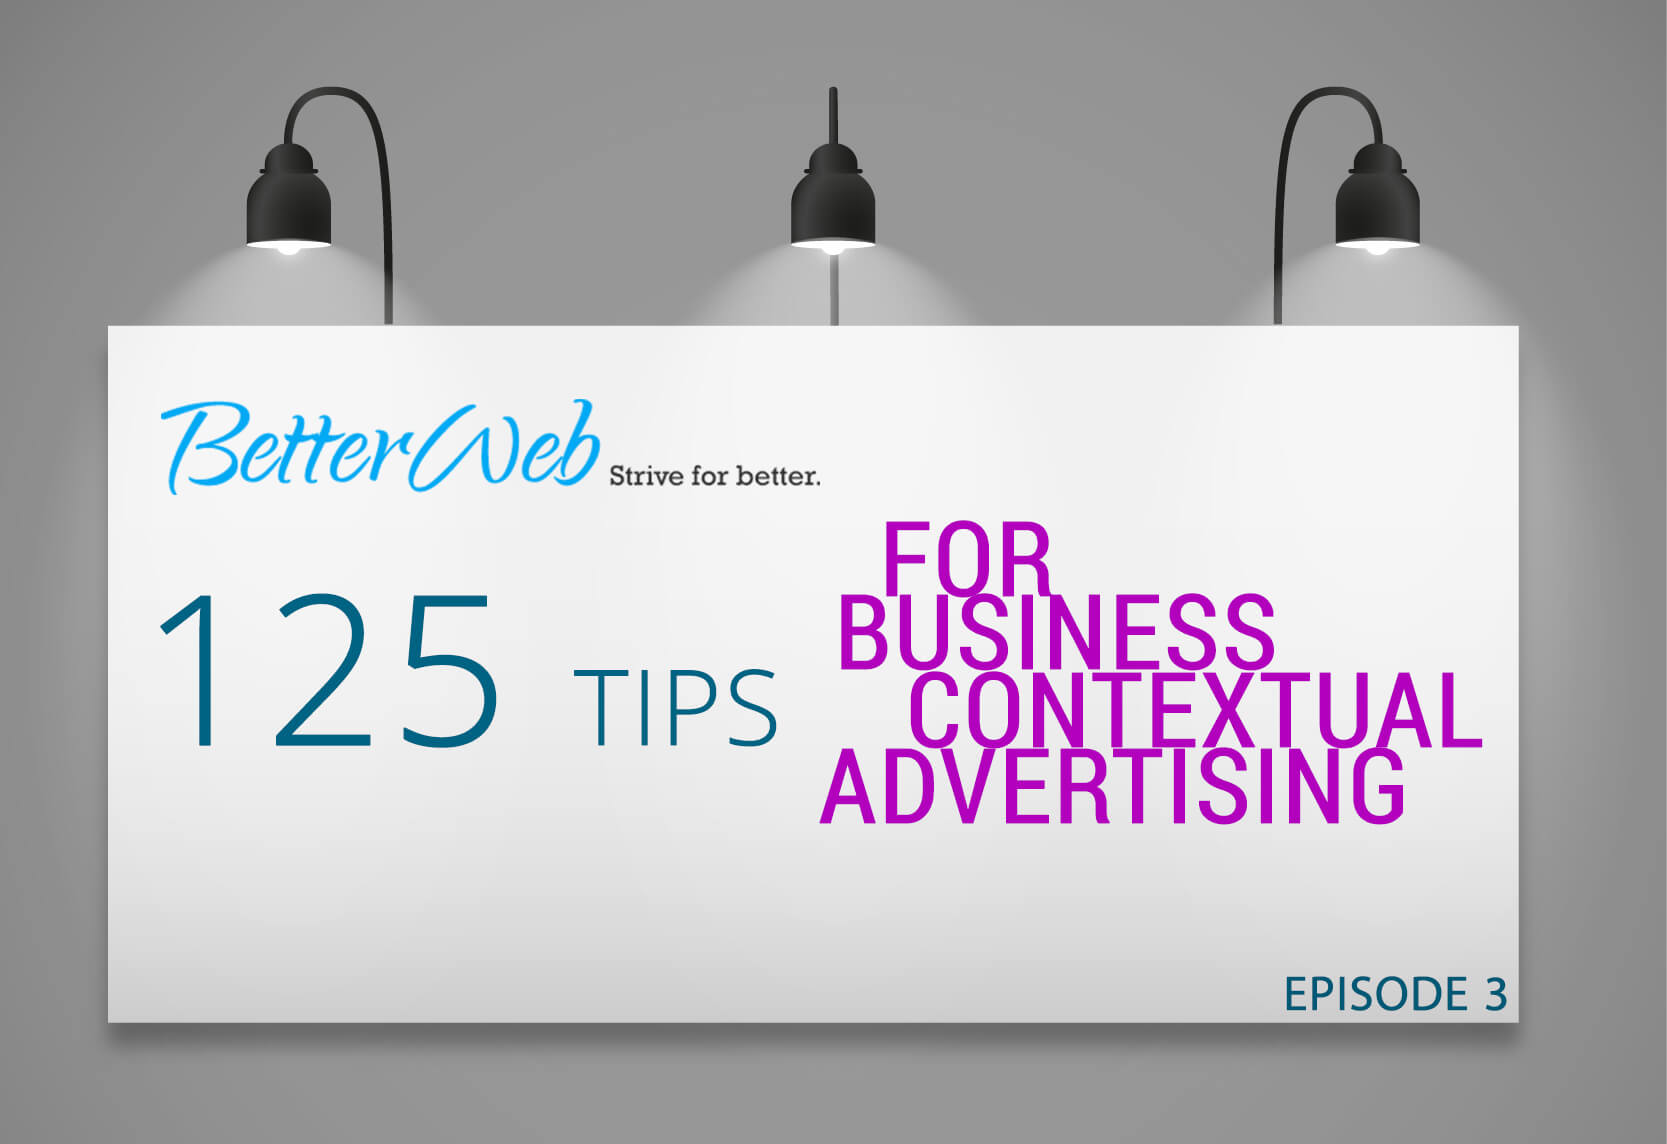 125 Tips For Business Contextual Advertising. Episode 3